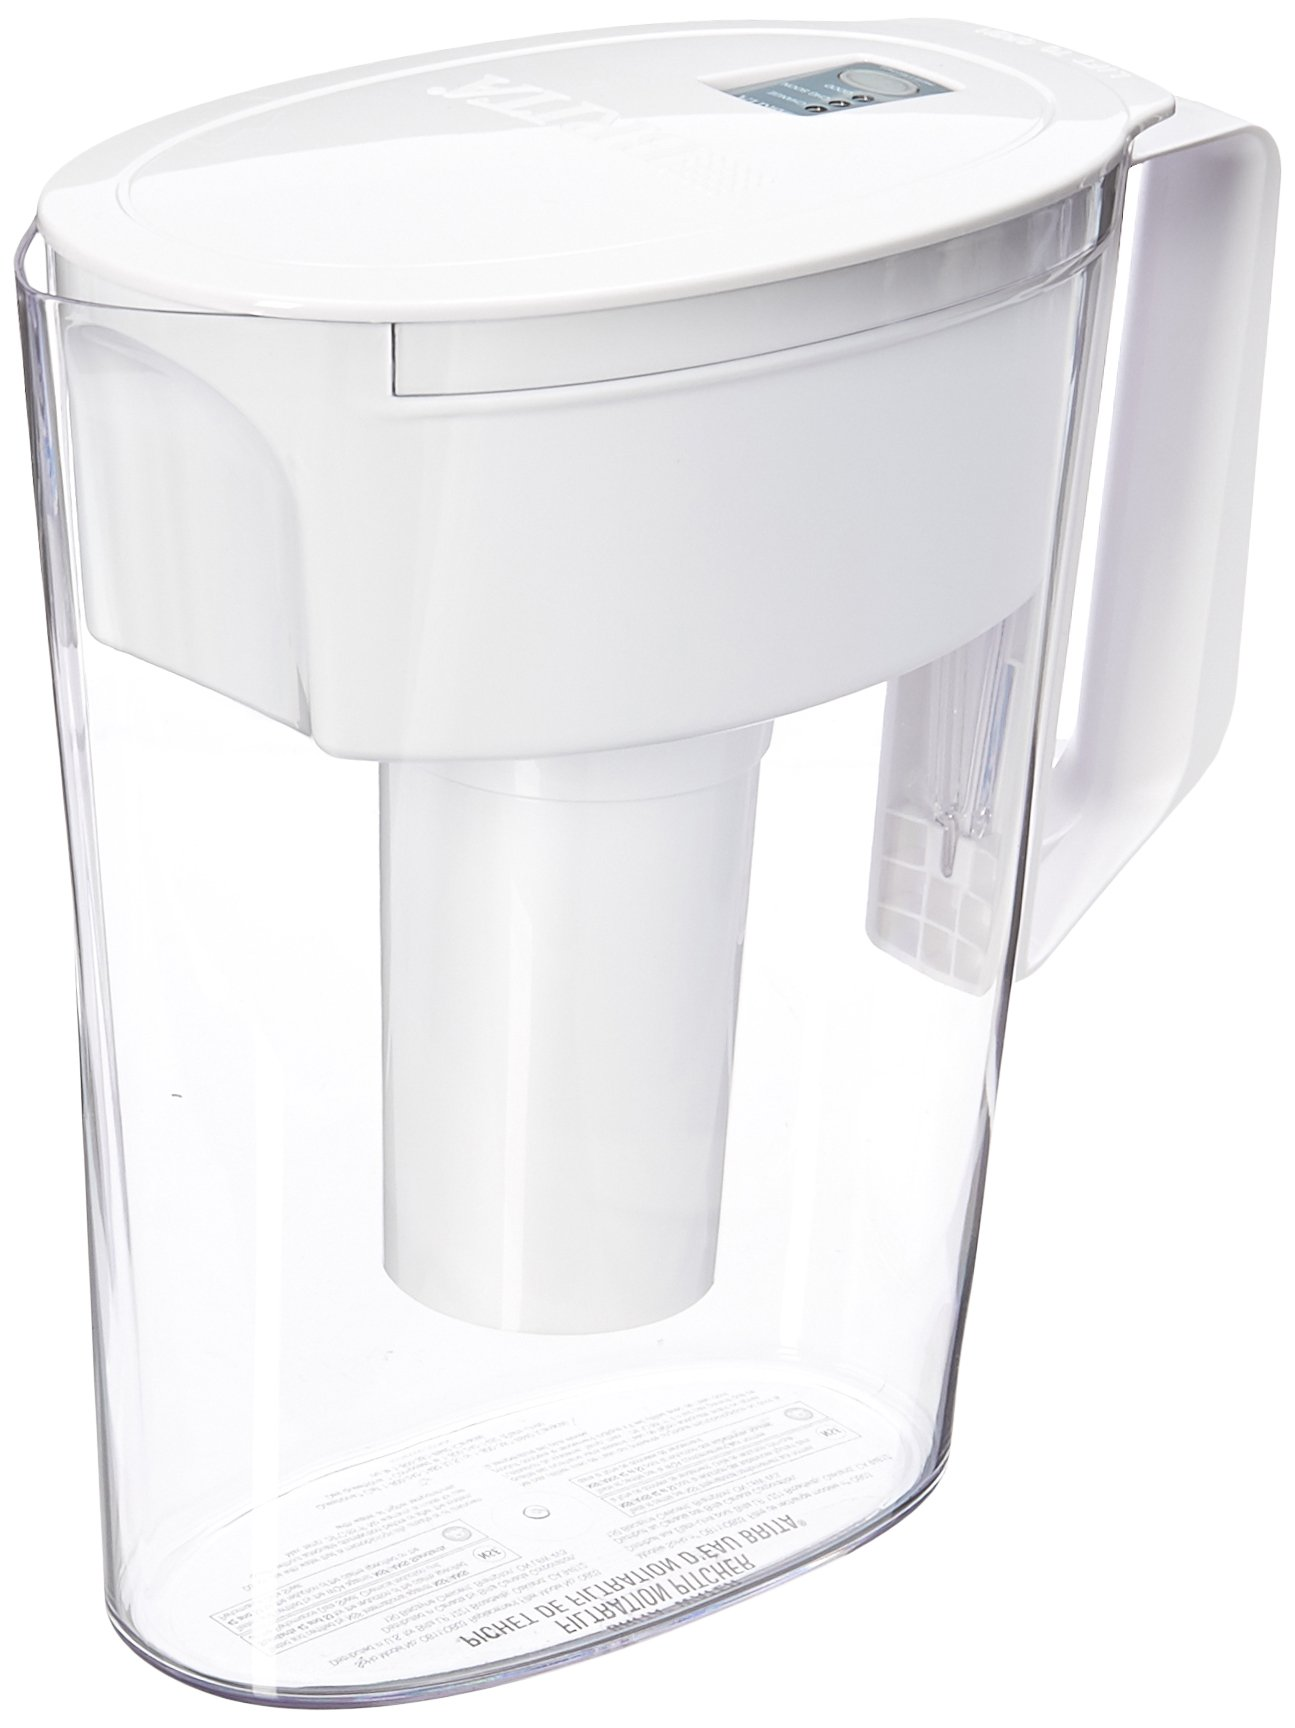 Brita SOHO White 5 Cup Water Pitcher